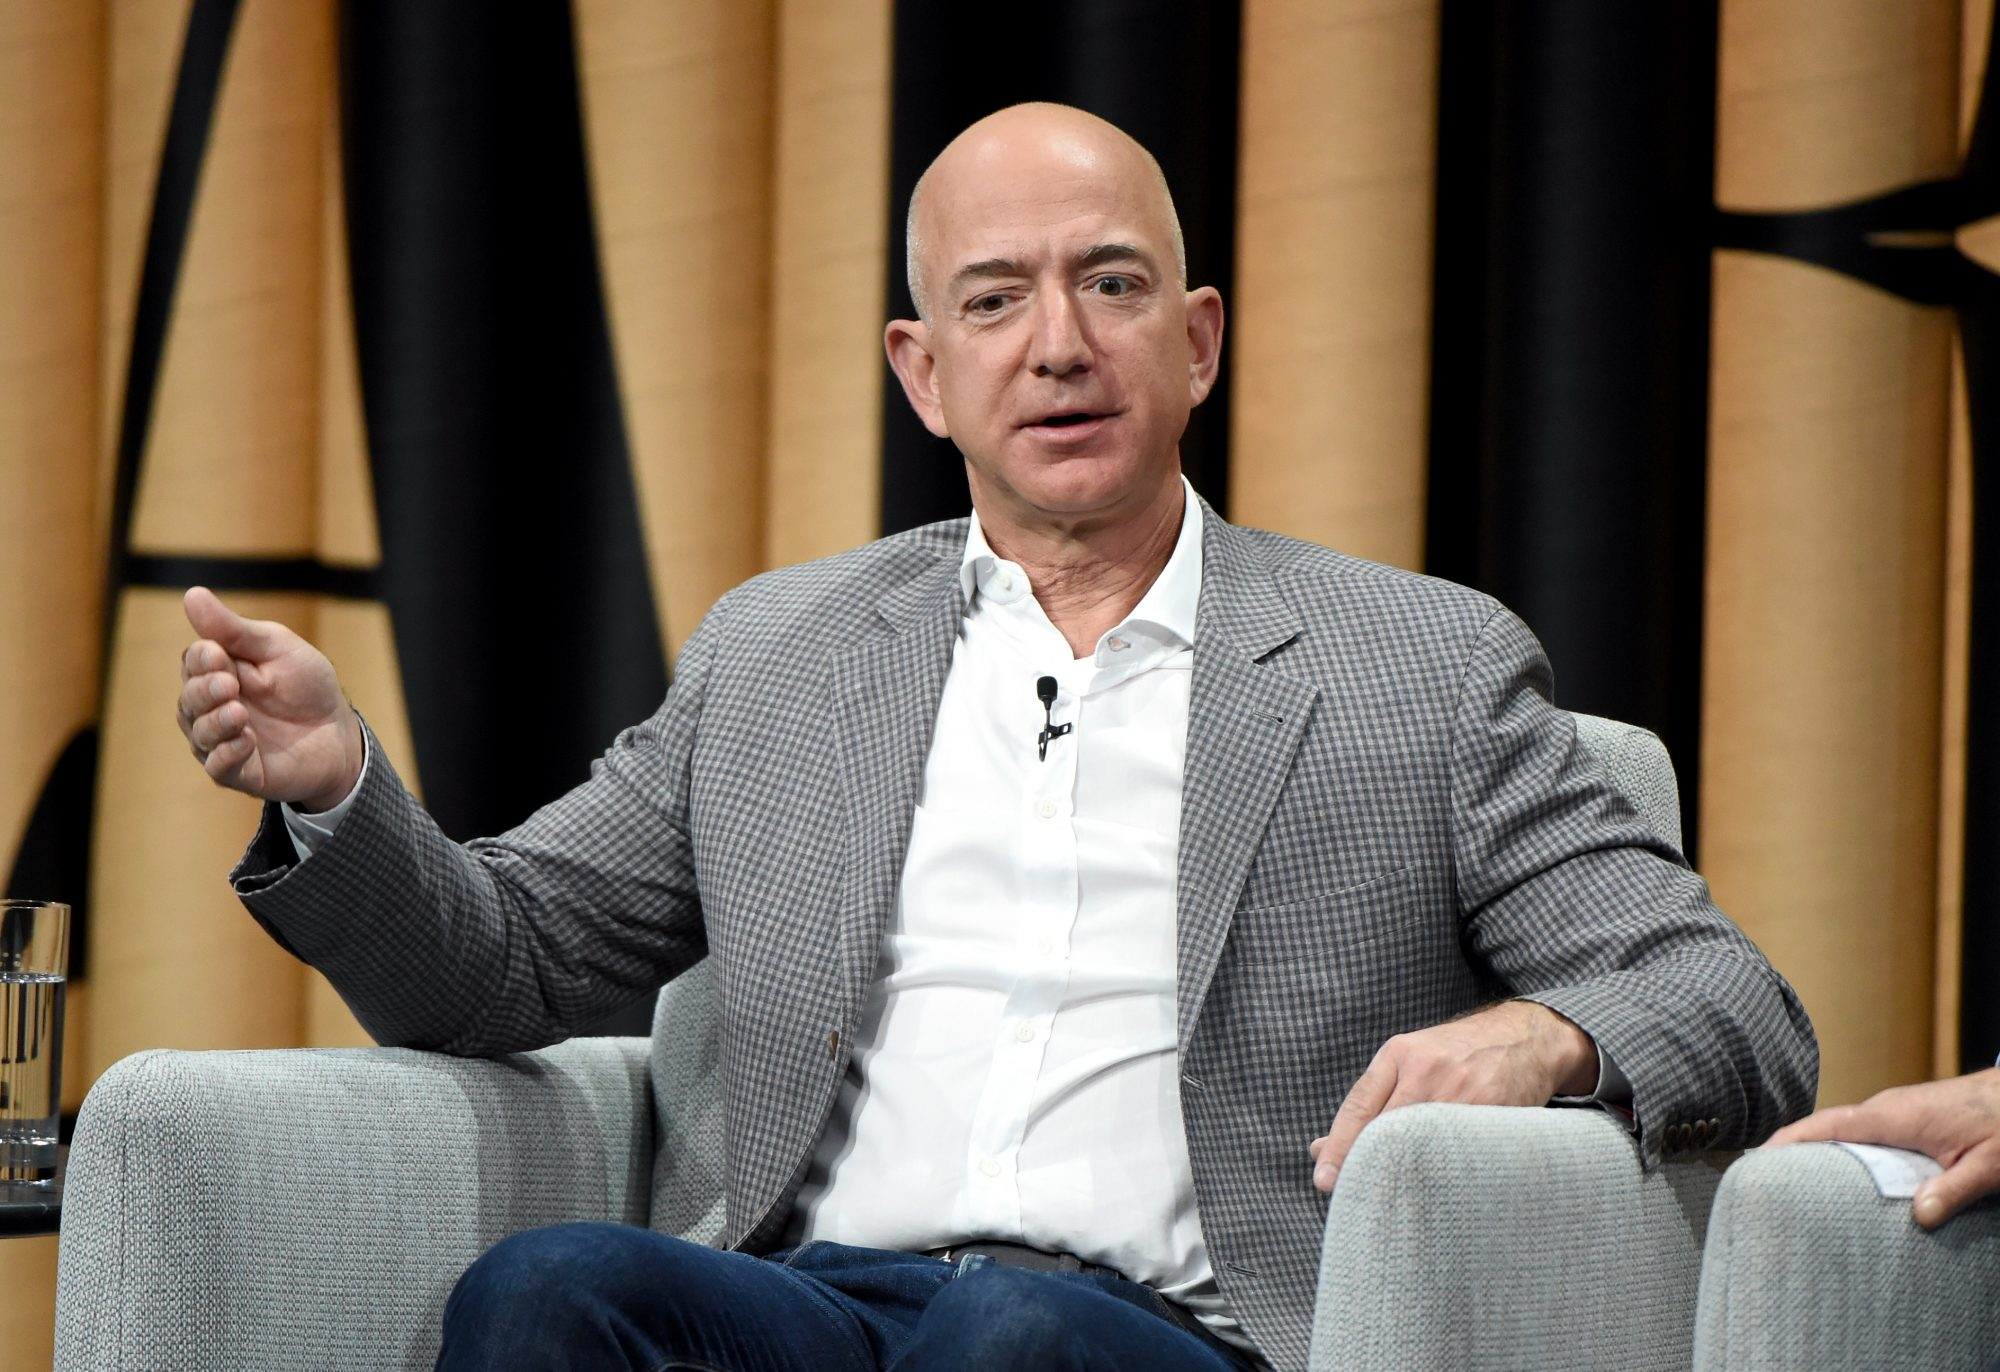 Founder of Amazon, Jeff Bezos, speaks onstage during  The Prime of Mr. Jeff Bezos  at the Vanity Fair New Establishment Summit at Yerba Buena Center for the Arts on October 20, 2016 in San Francisco, California.